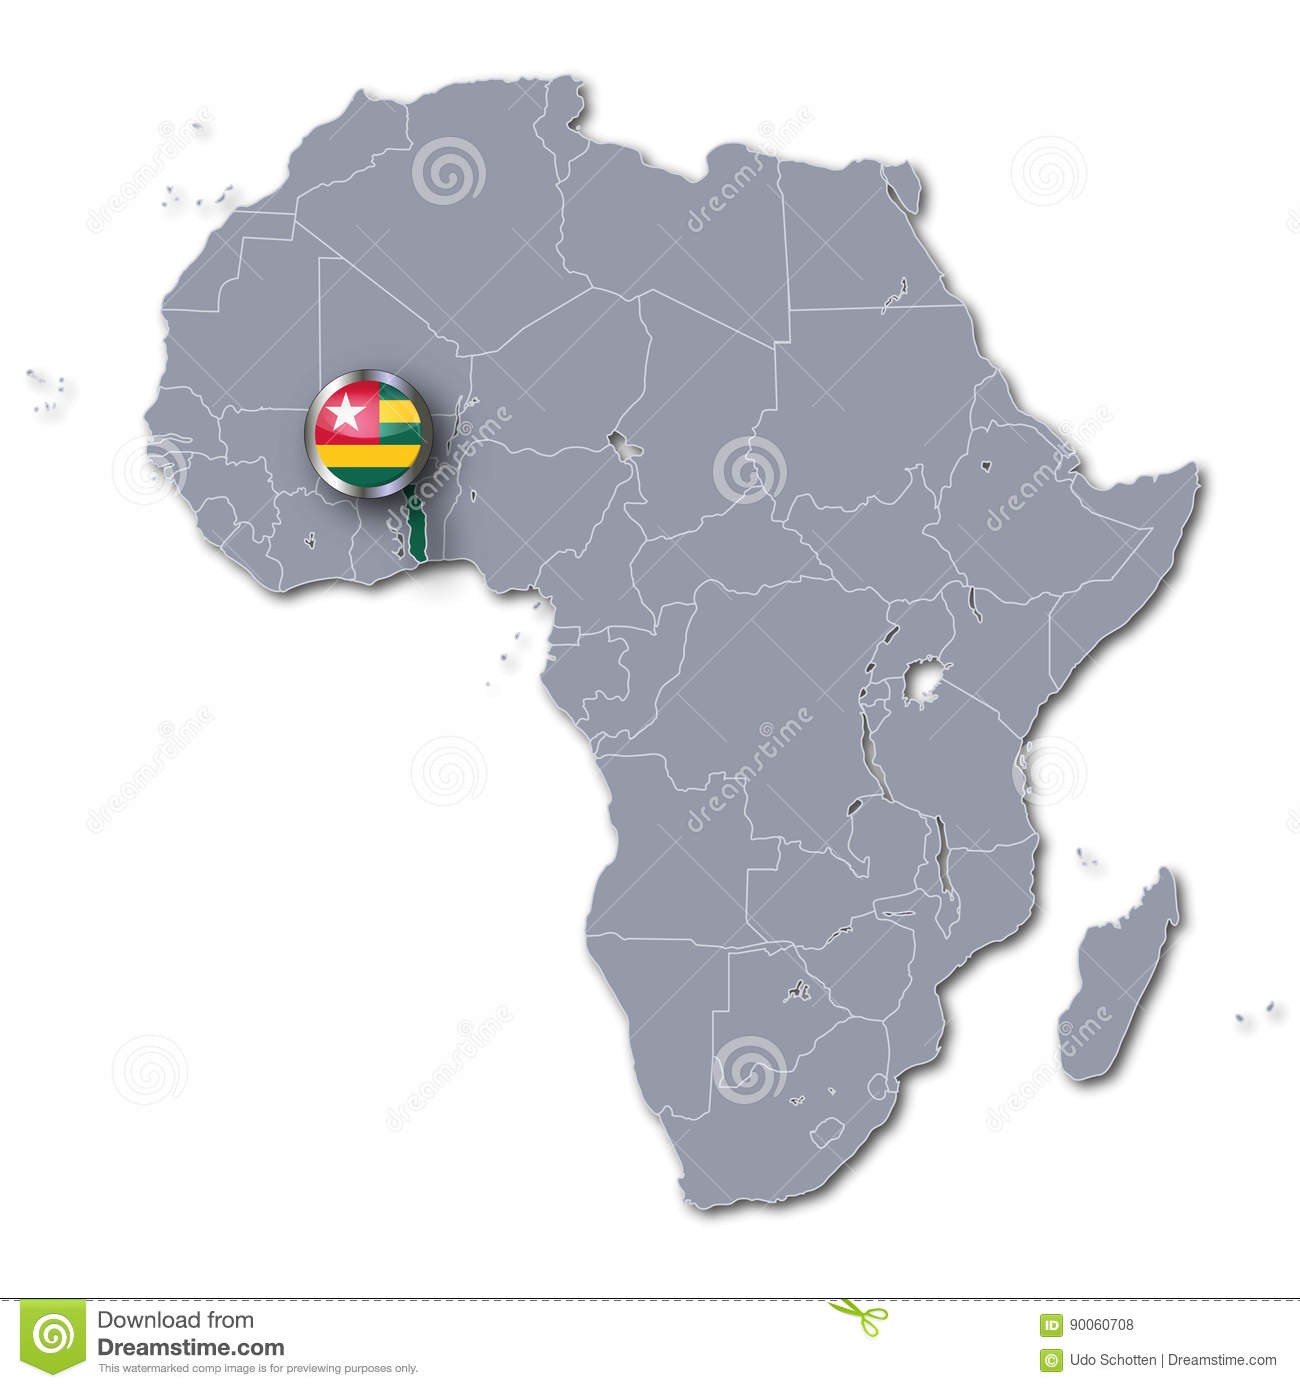 Africa map and togo stock illustration illustration of german download africa map and togo stock illustration illustration of german 90060708 gumiabroncs Images